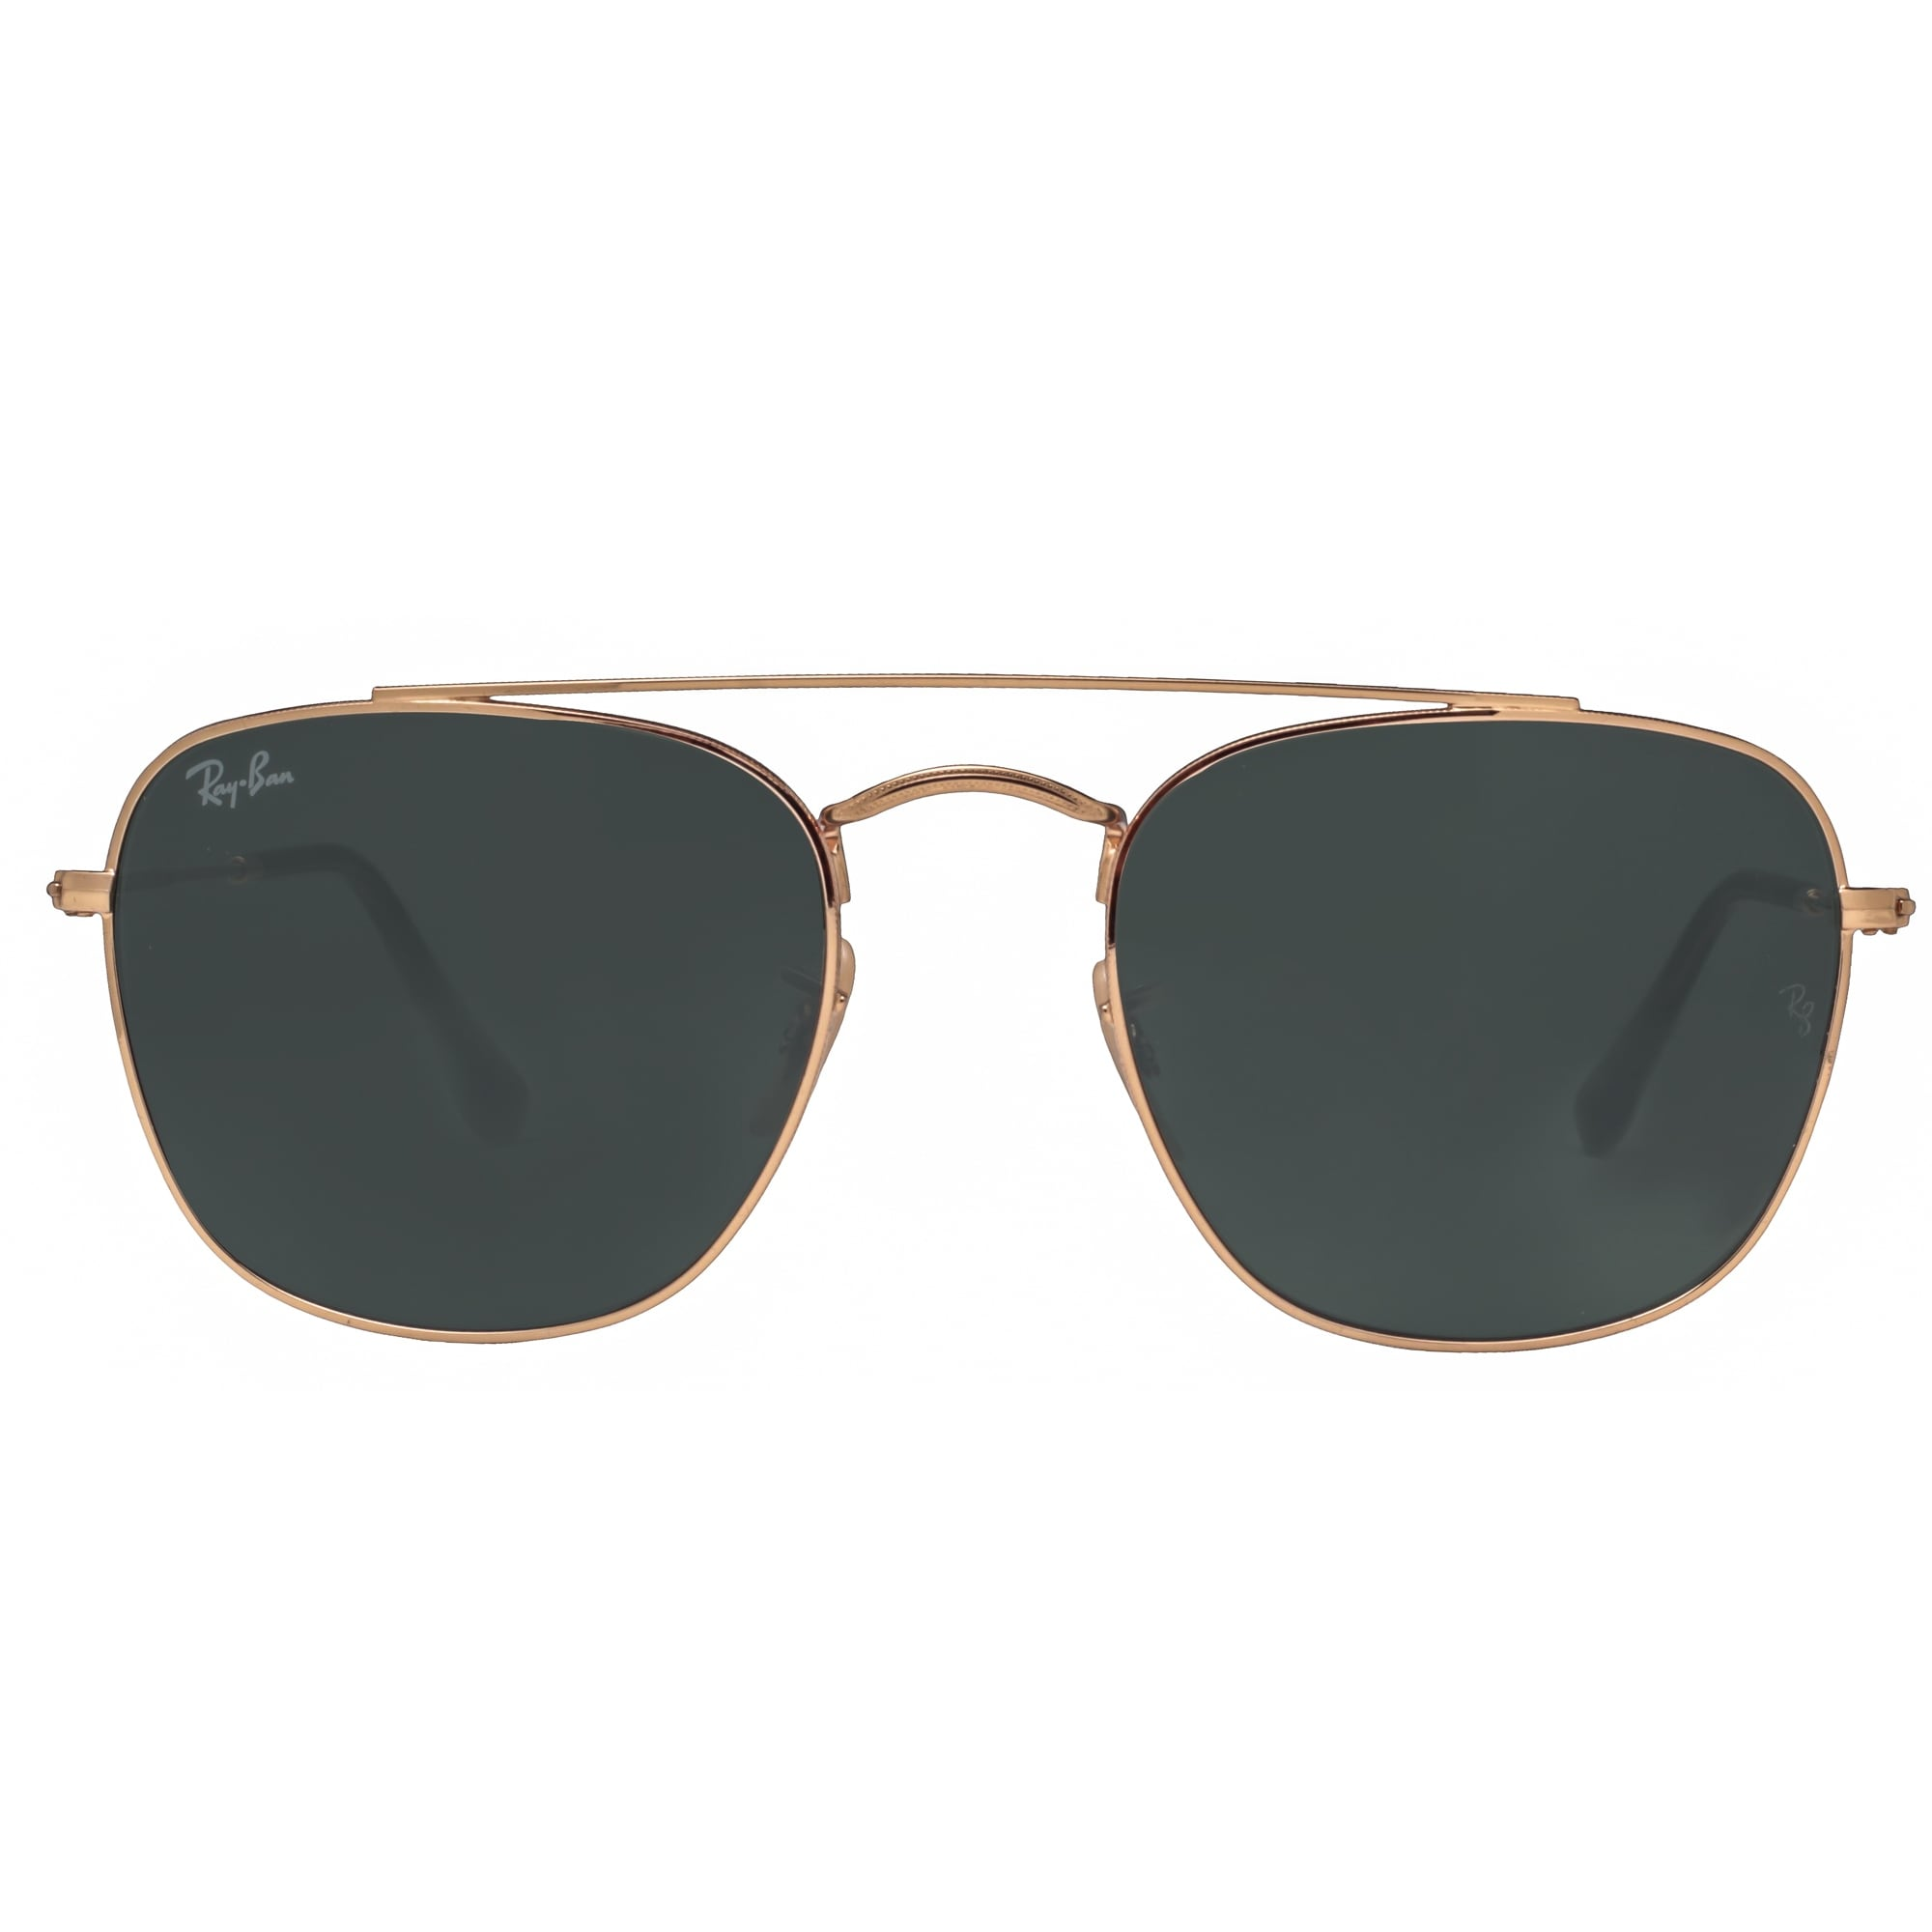 Ray-Ban RB3557 Sonnenbrille Gold 001 54mm U8gIe